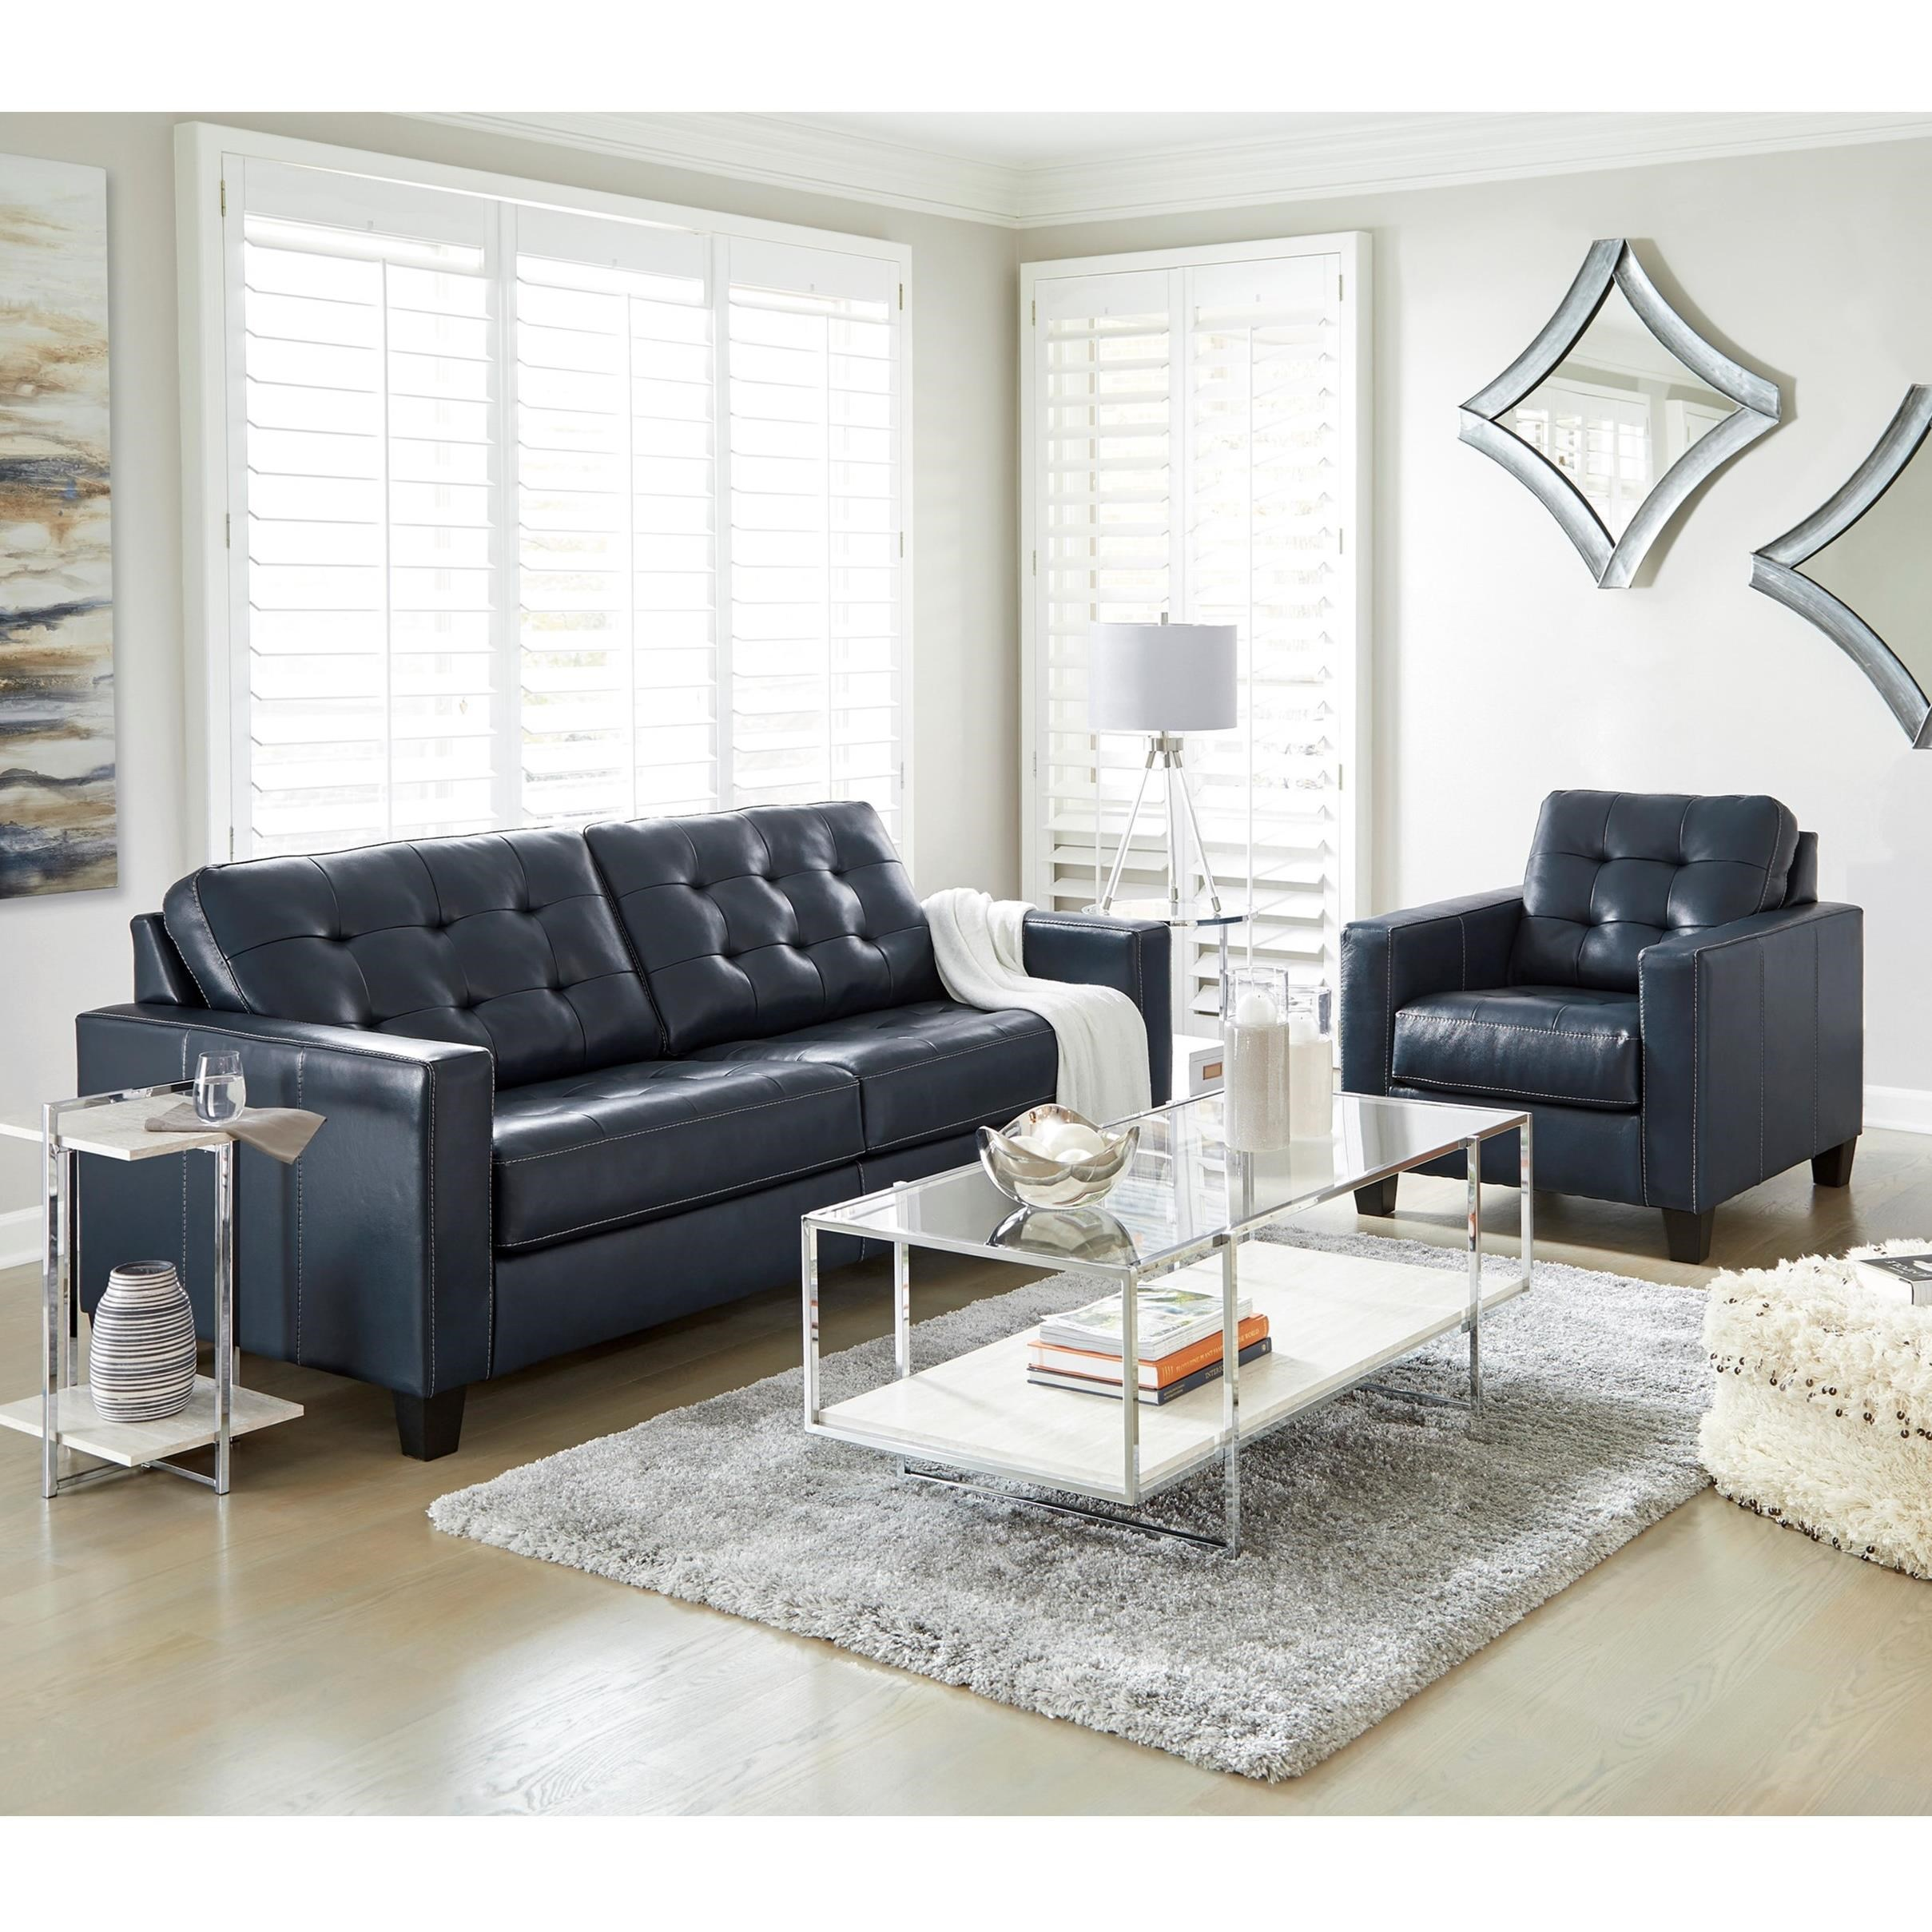 Altonbury Stationary Living Room Group by Signature Design by Ashley at Catalog Outlet